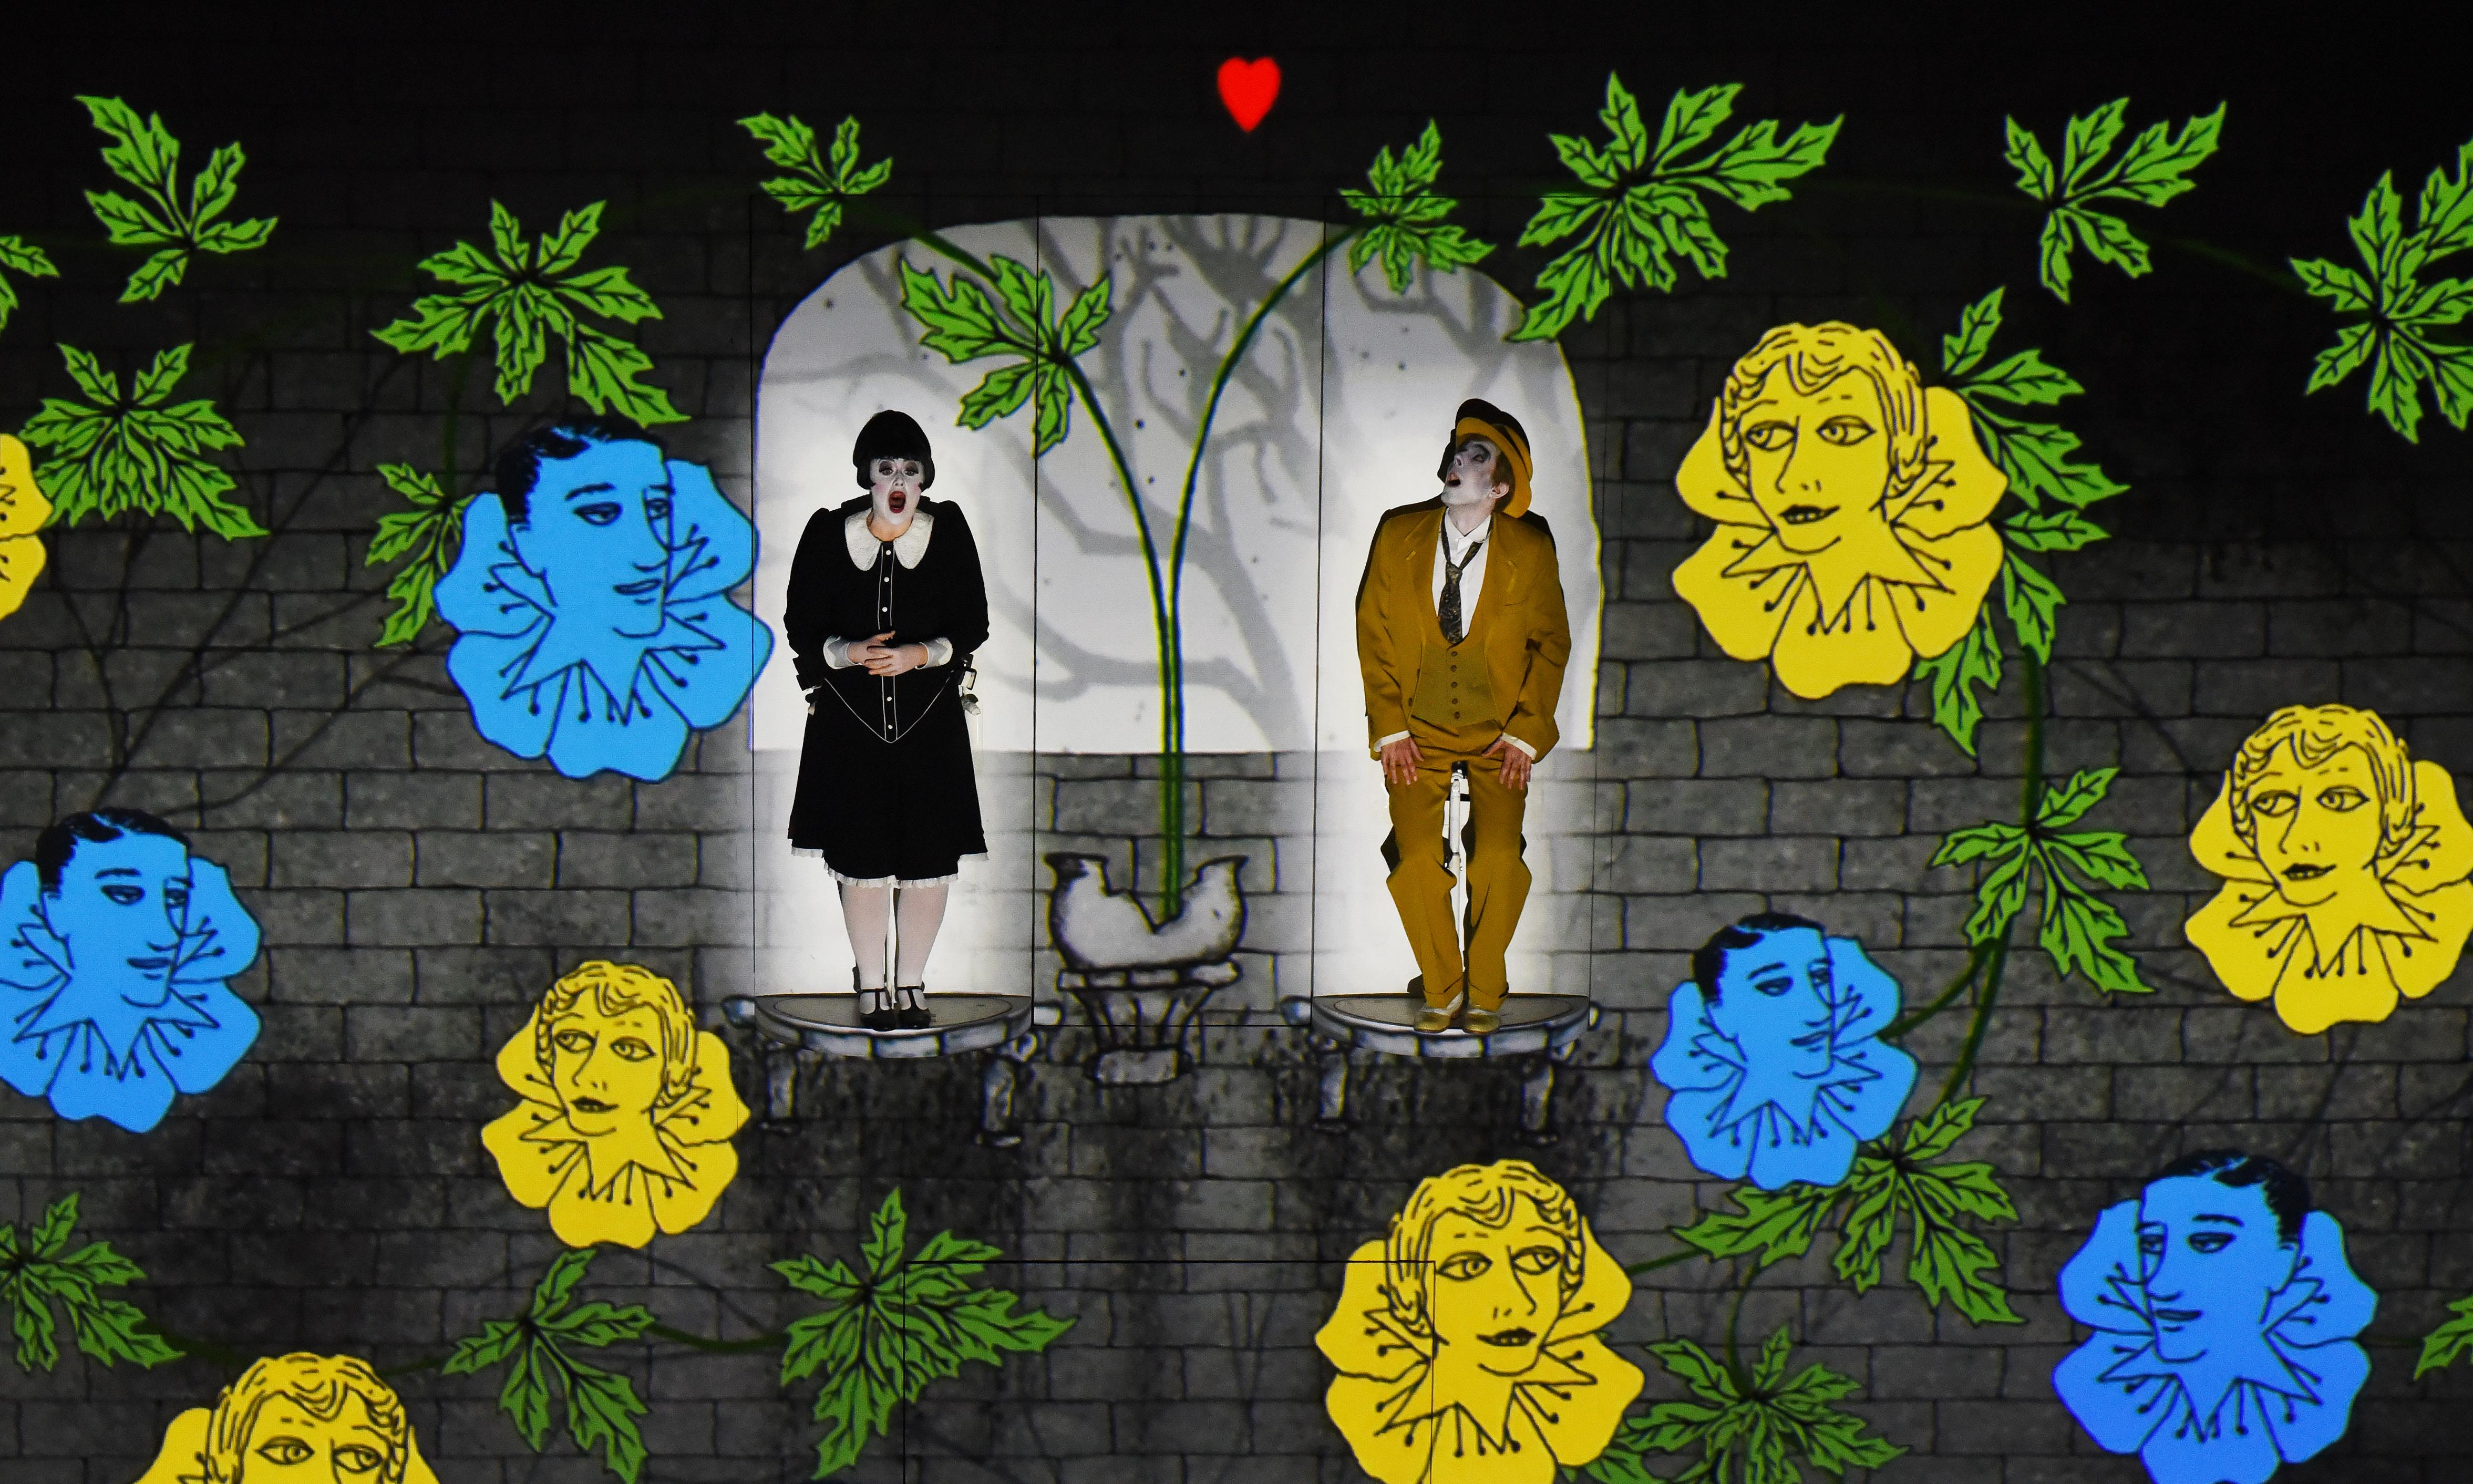 Opera, dull? Watching The Magic Flute is like drinking 10 cups of coffee